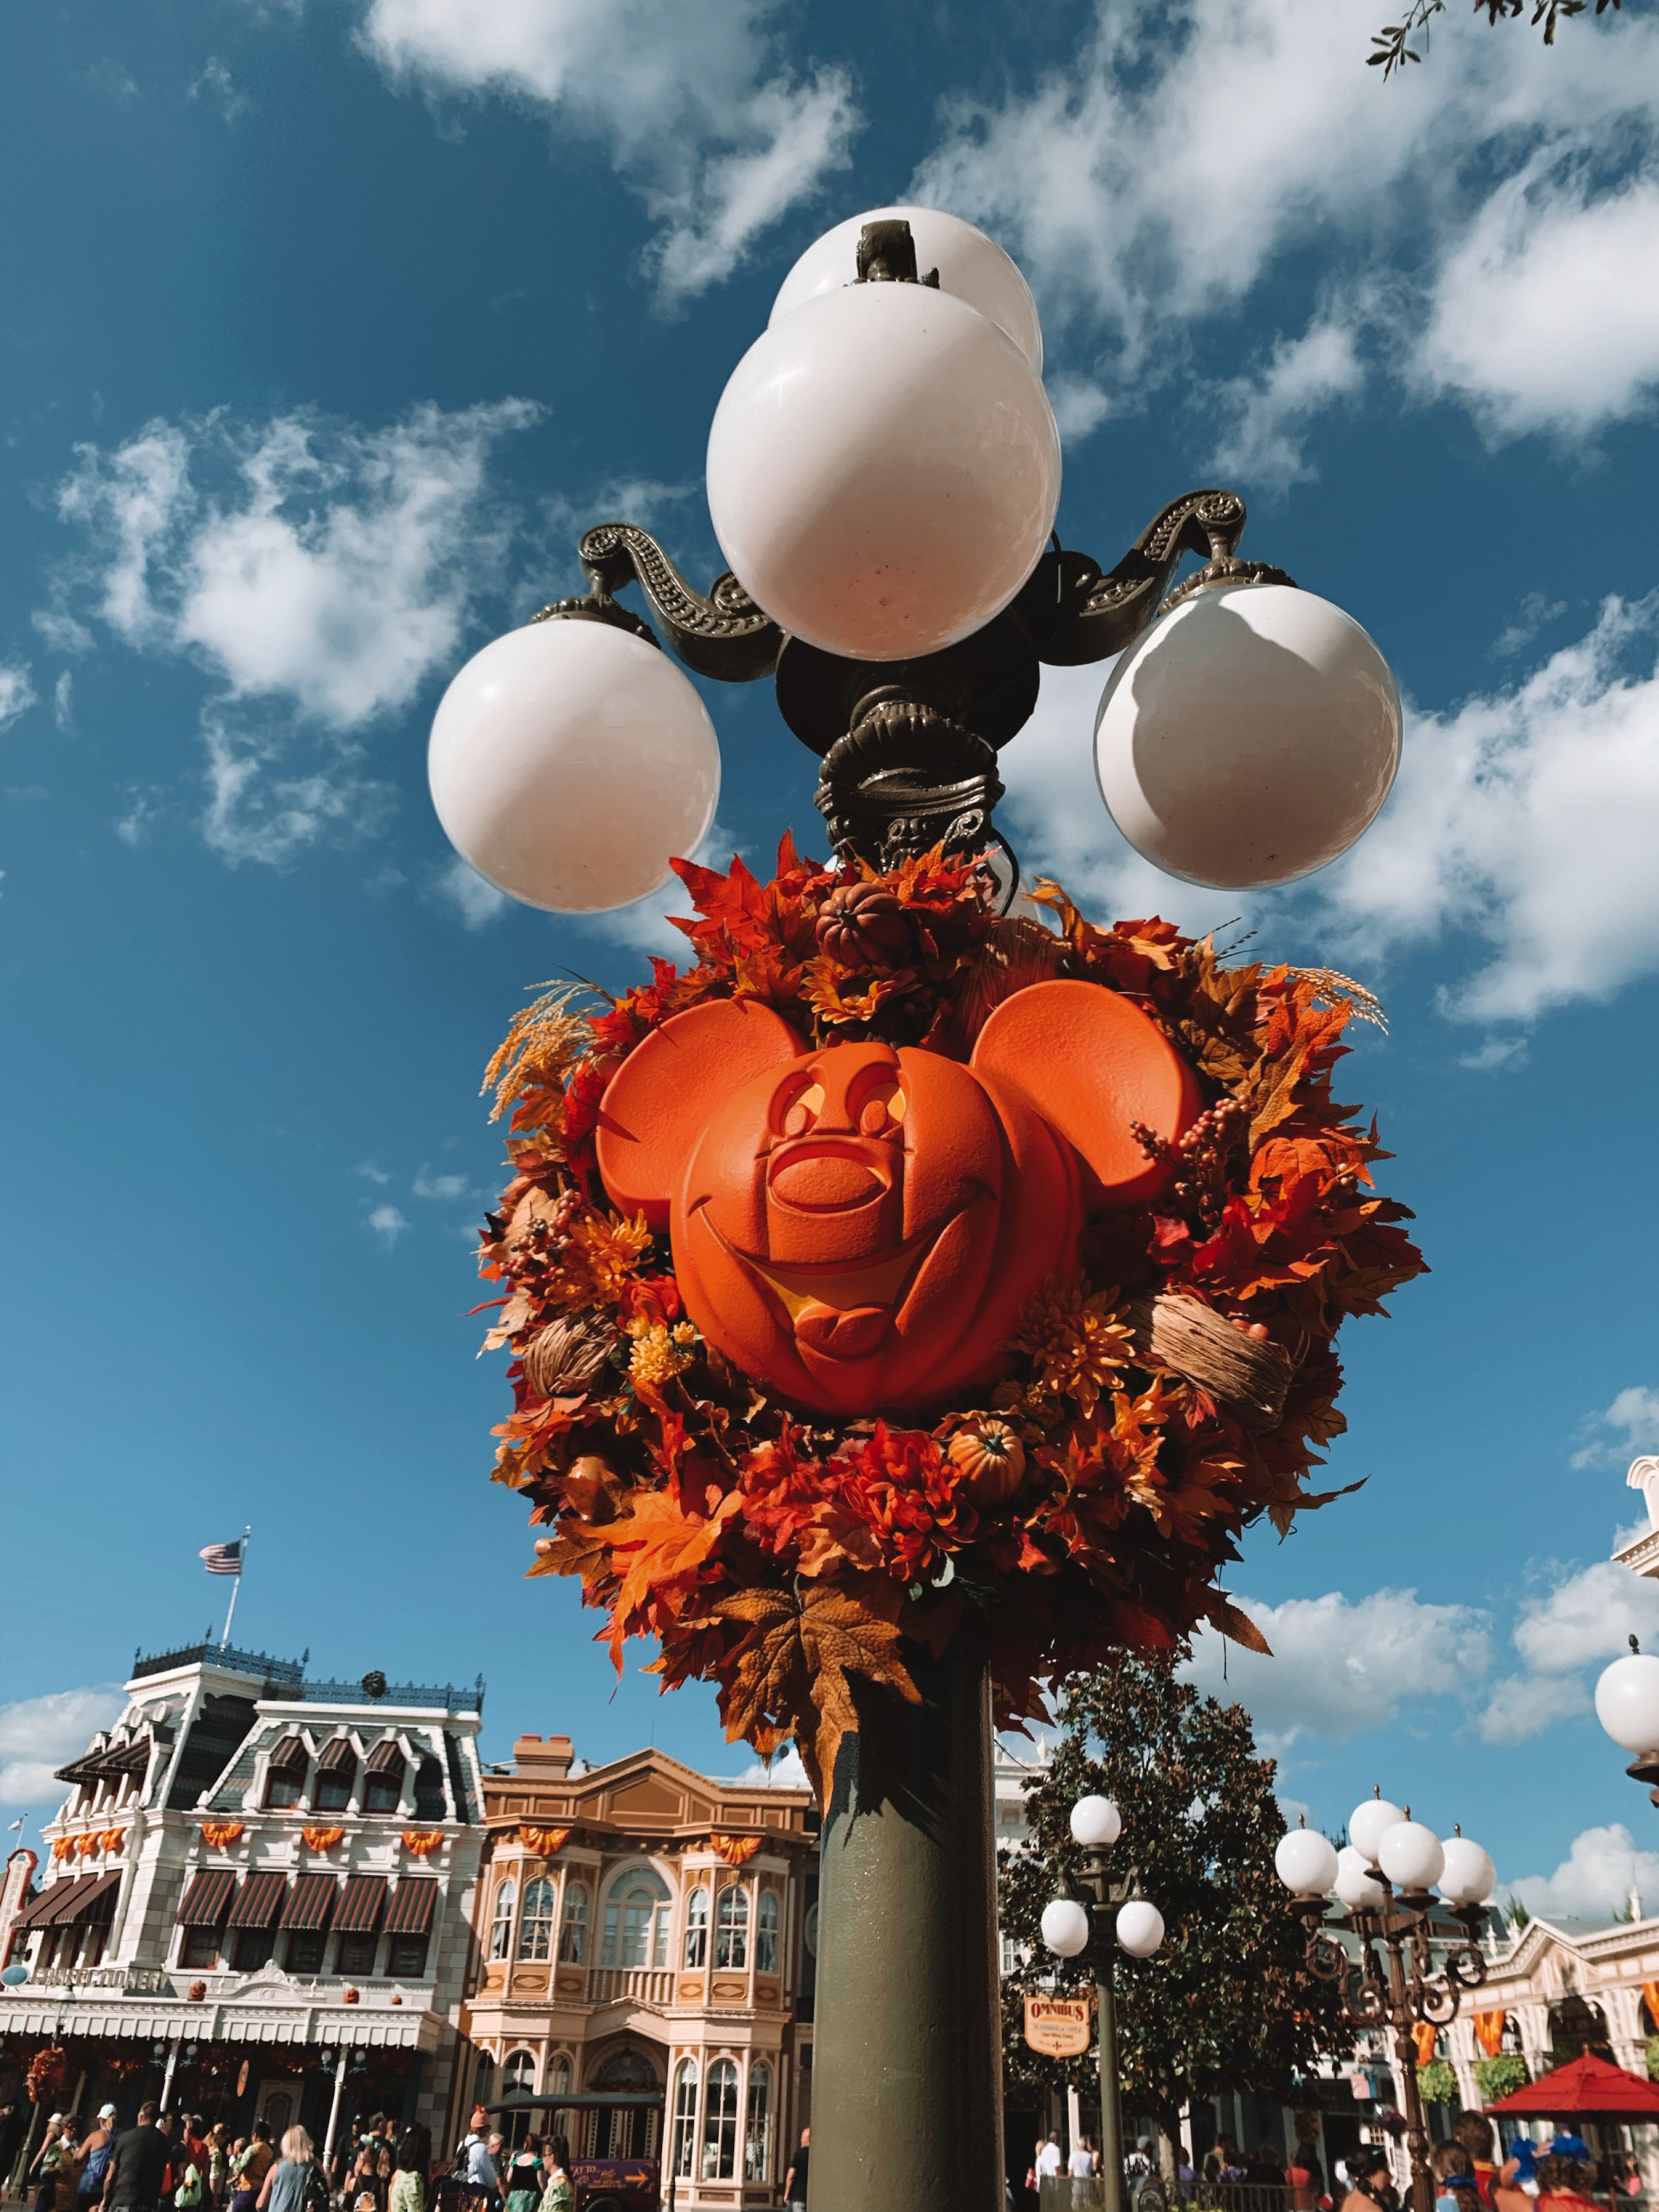 Pin by Meredith Tinkle on cast member Disney halloween